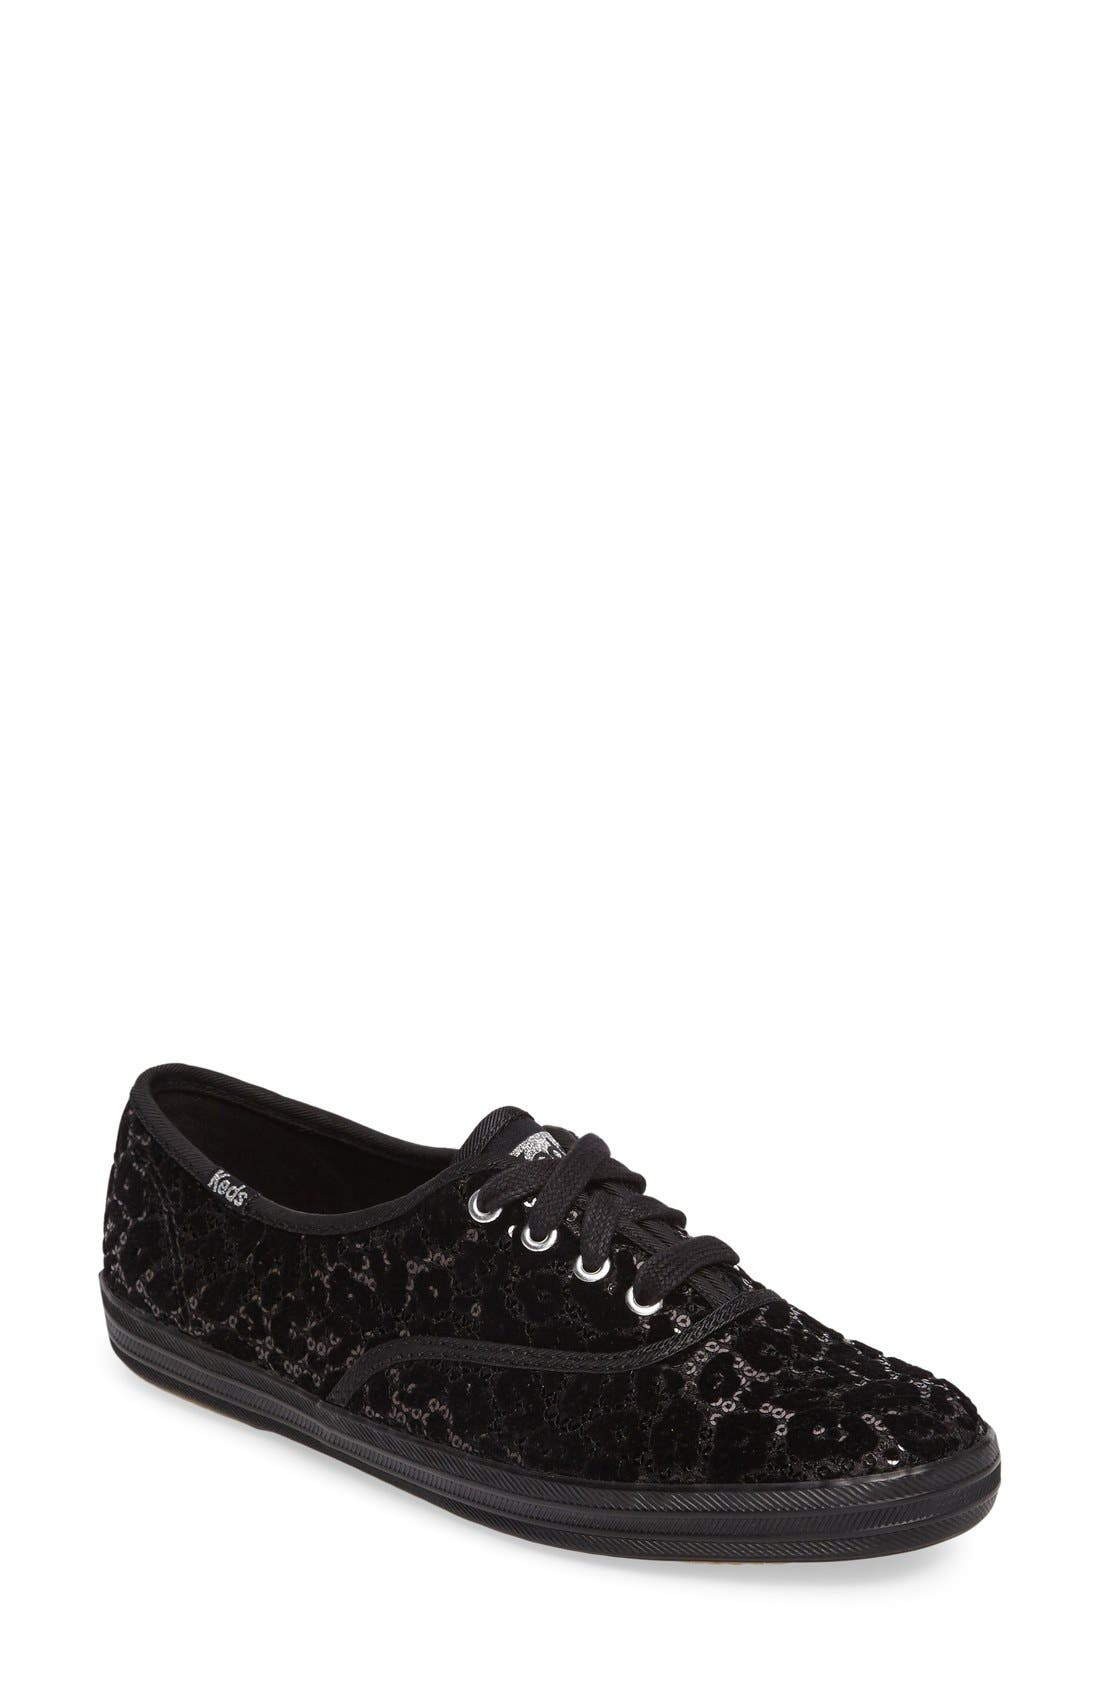 Main Image - Keds® Champion Leapord Textured Sequined Sneaker (Women)